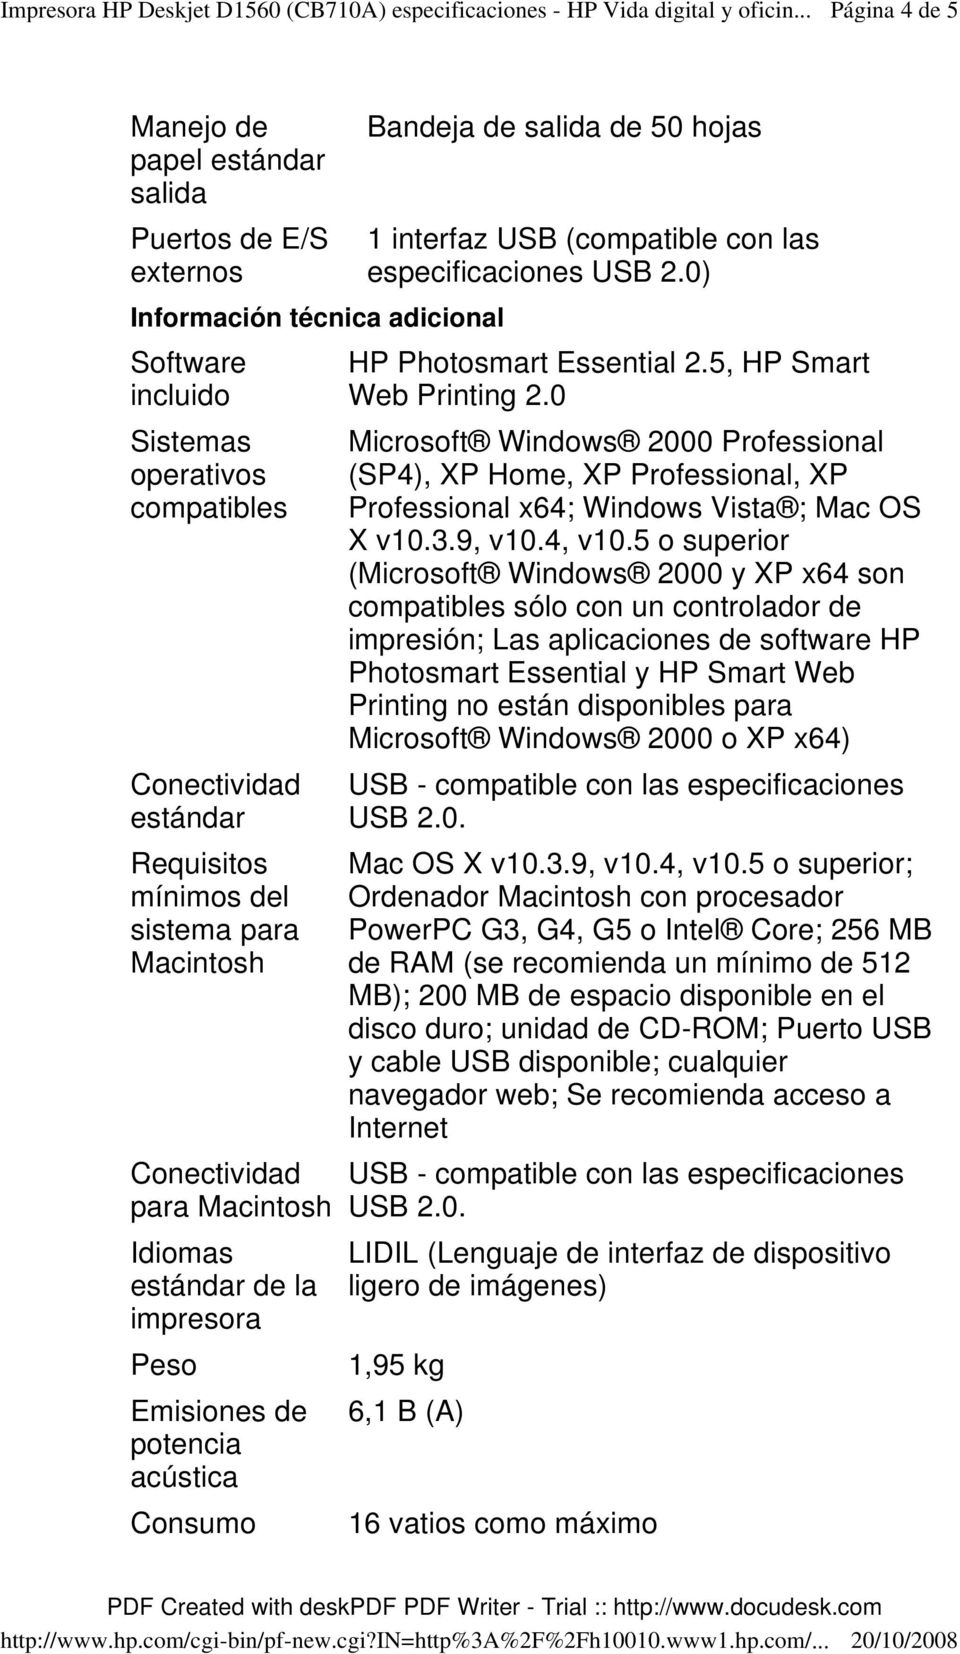 especificaciones USB 2.0) HP Photosmart Essential 2.5, HP Smart Web Printing 2.0 Microsoft Windows 2000 Professional (SP4), XP Home, XP Professional, XP Professional x64; Windows Vista ; Mac OS X v10.